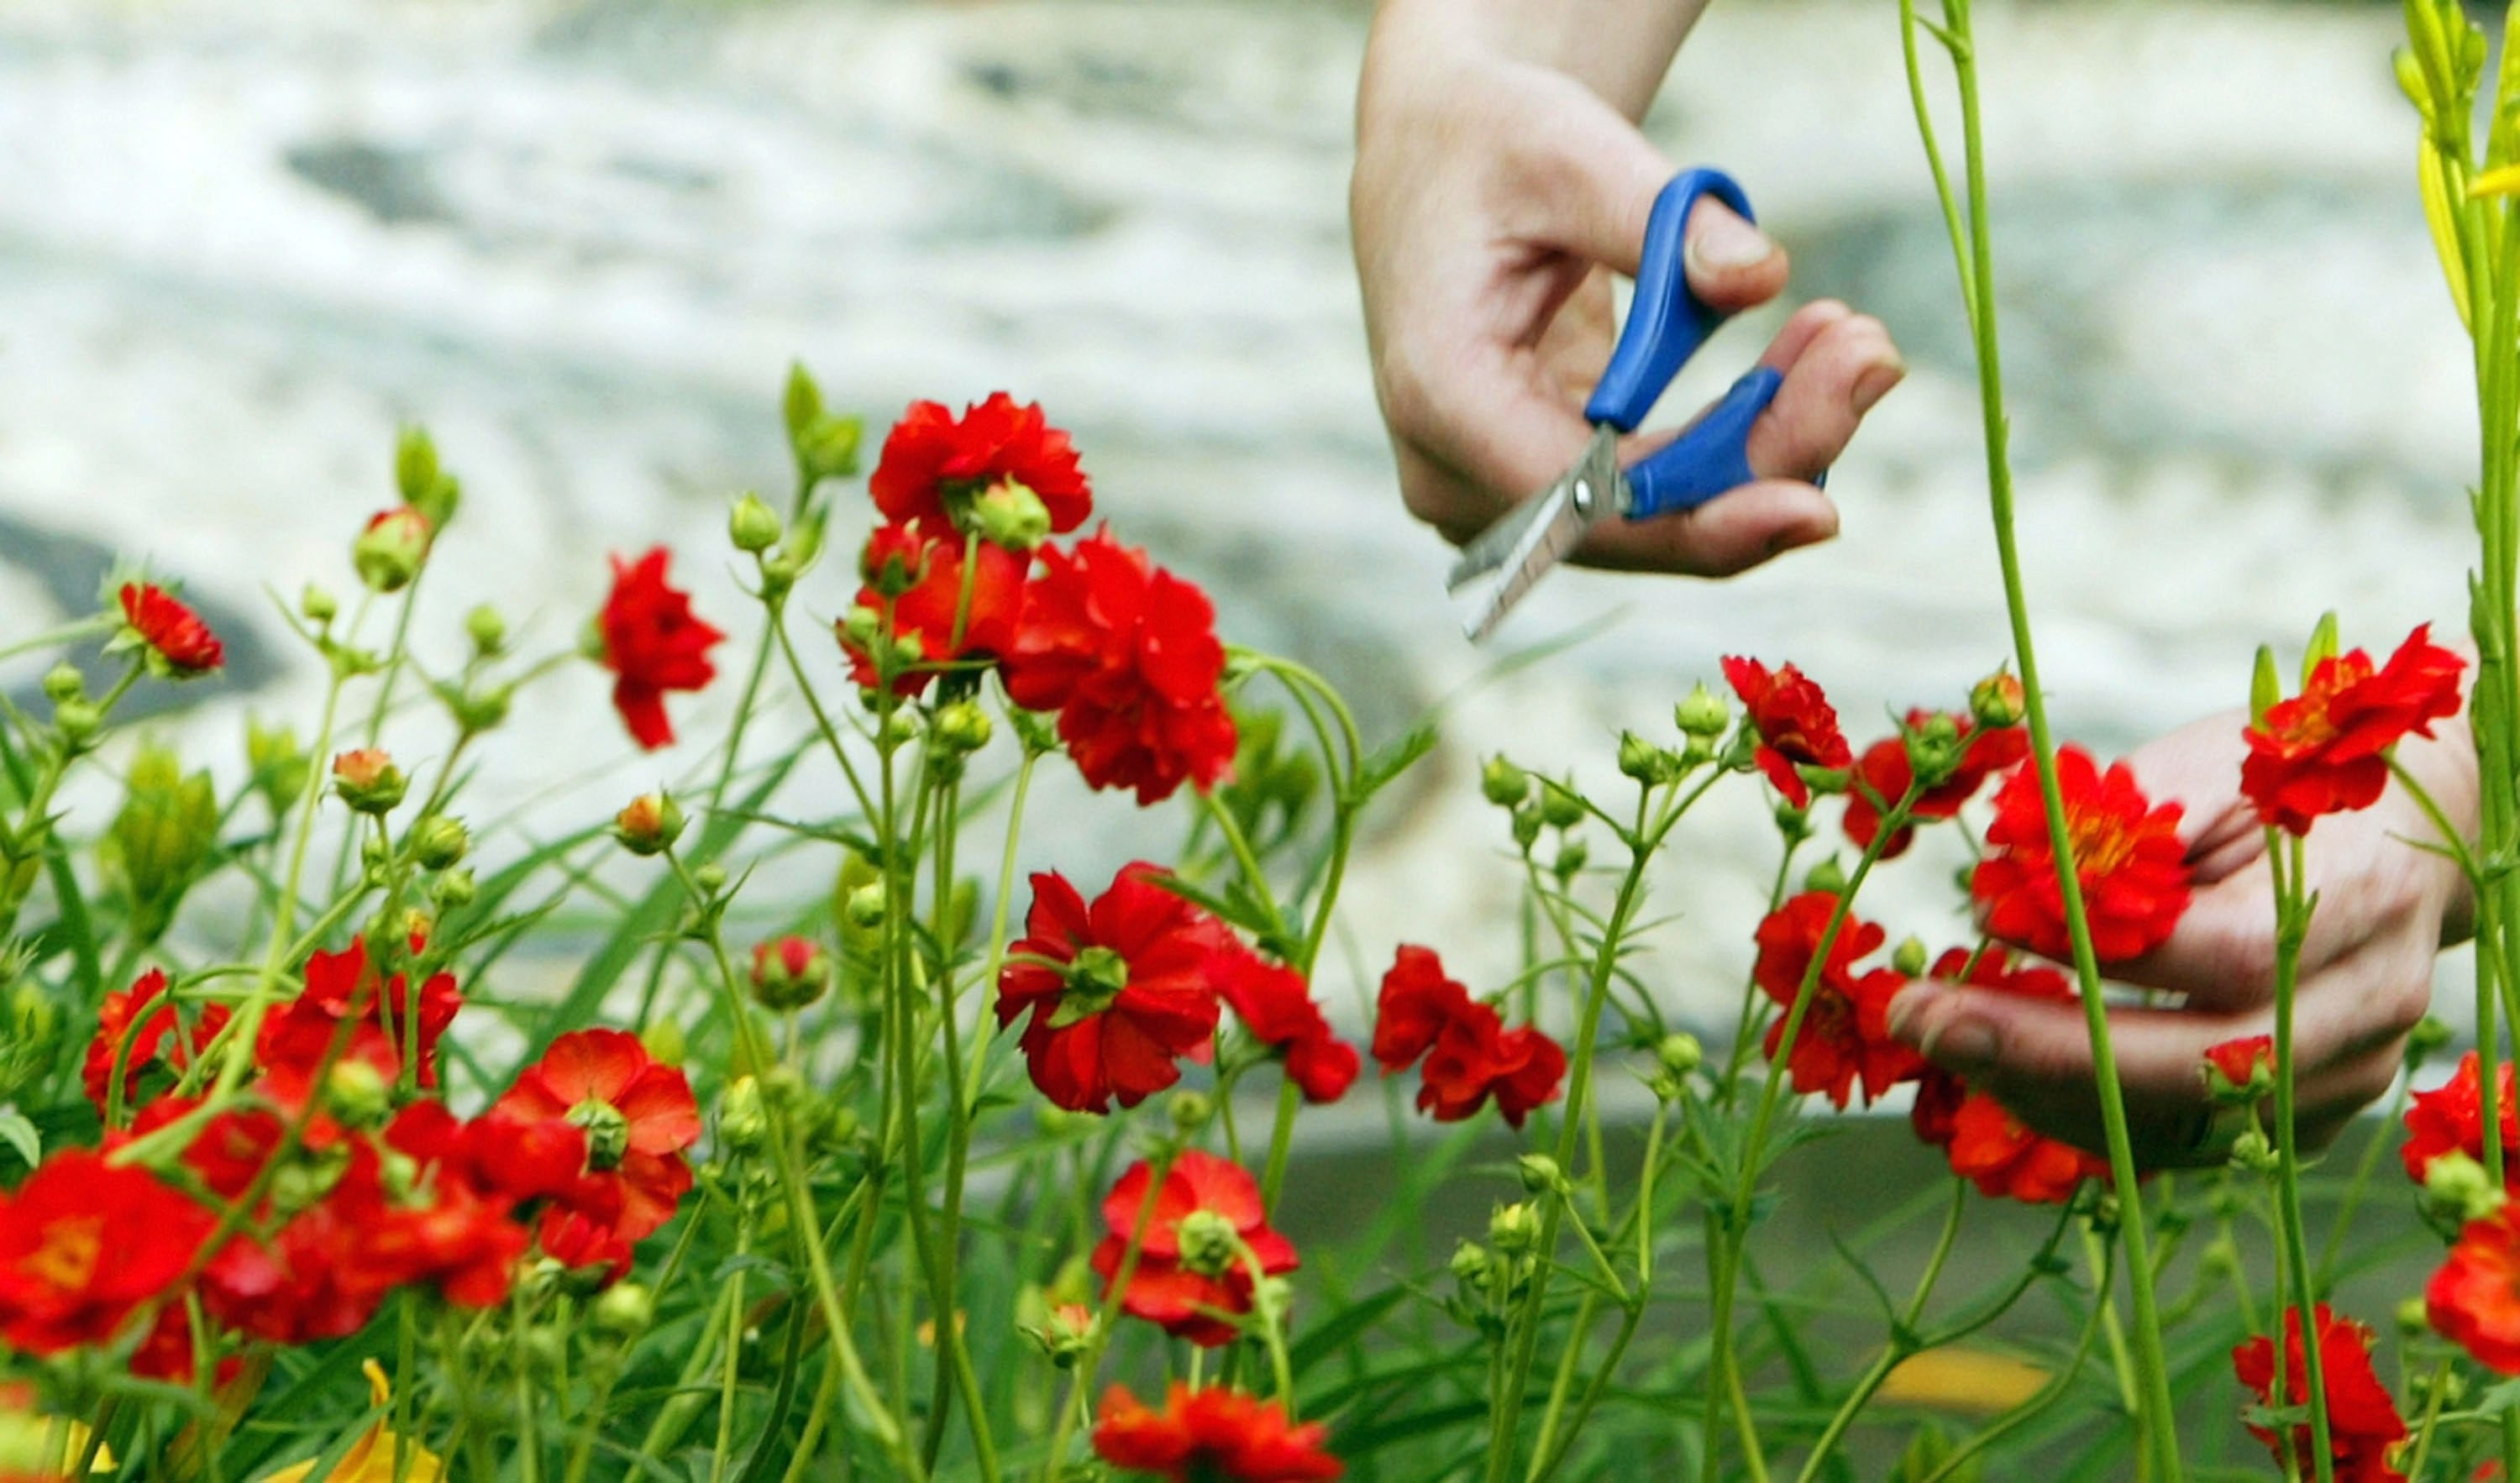 Dig in:  There are many kinds of gardeners, with vast differences in what they want, how much they want to garden and what they care to know.